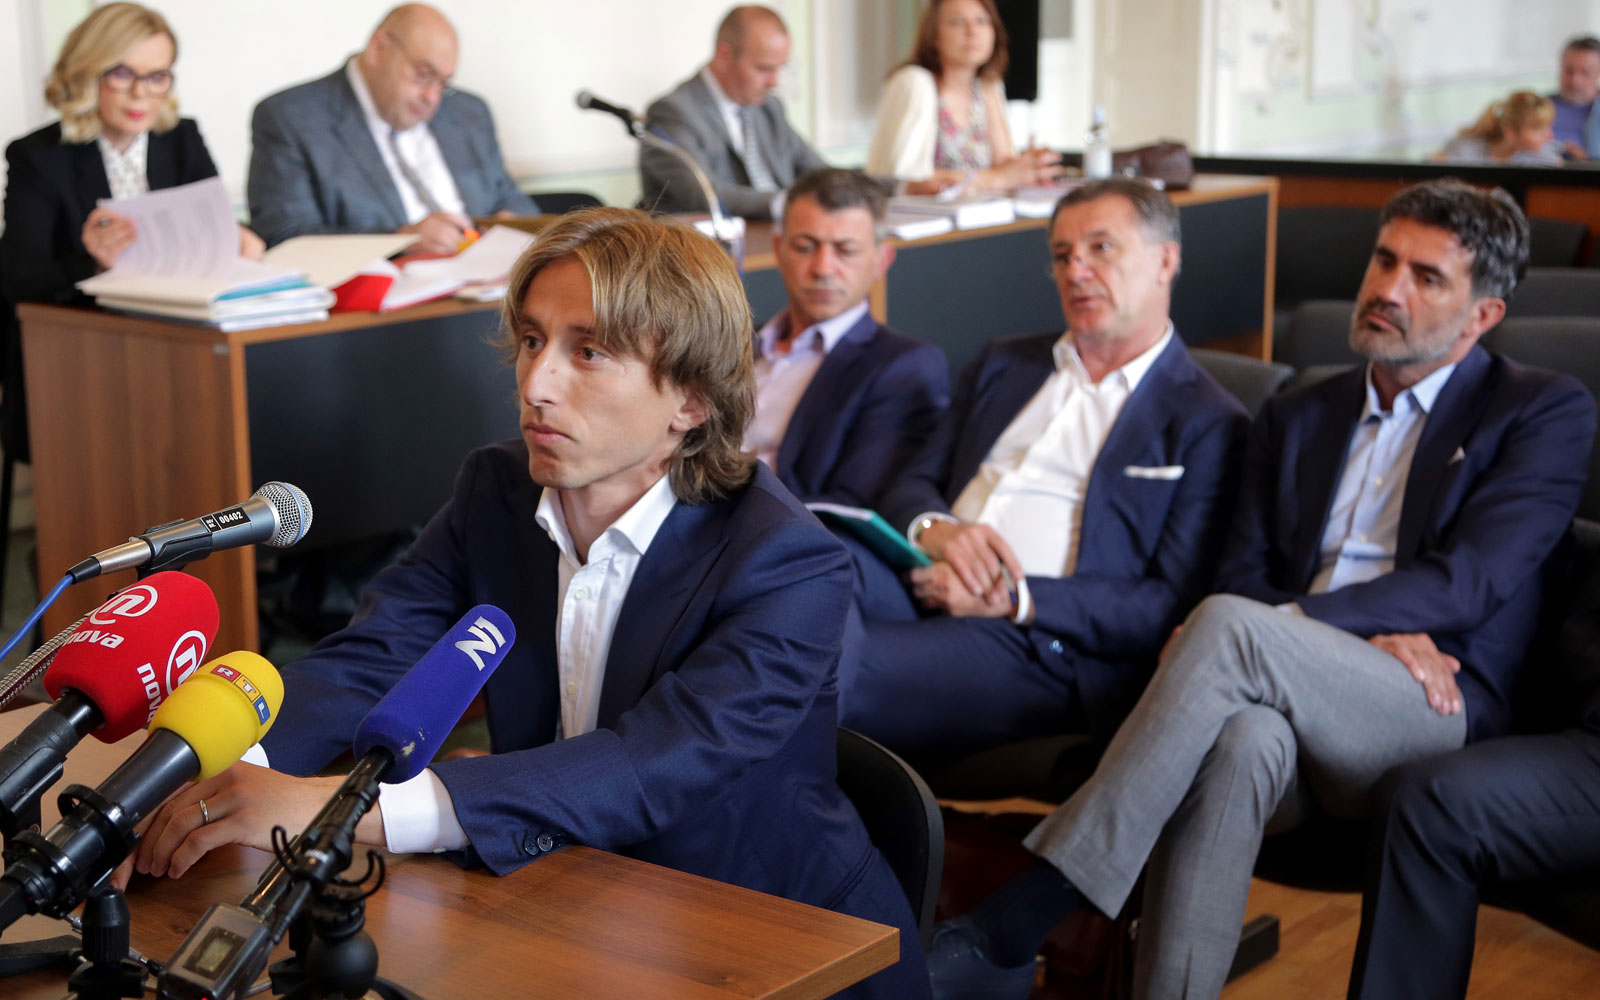 Luka Modric testifies in a Croatian football corruption case